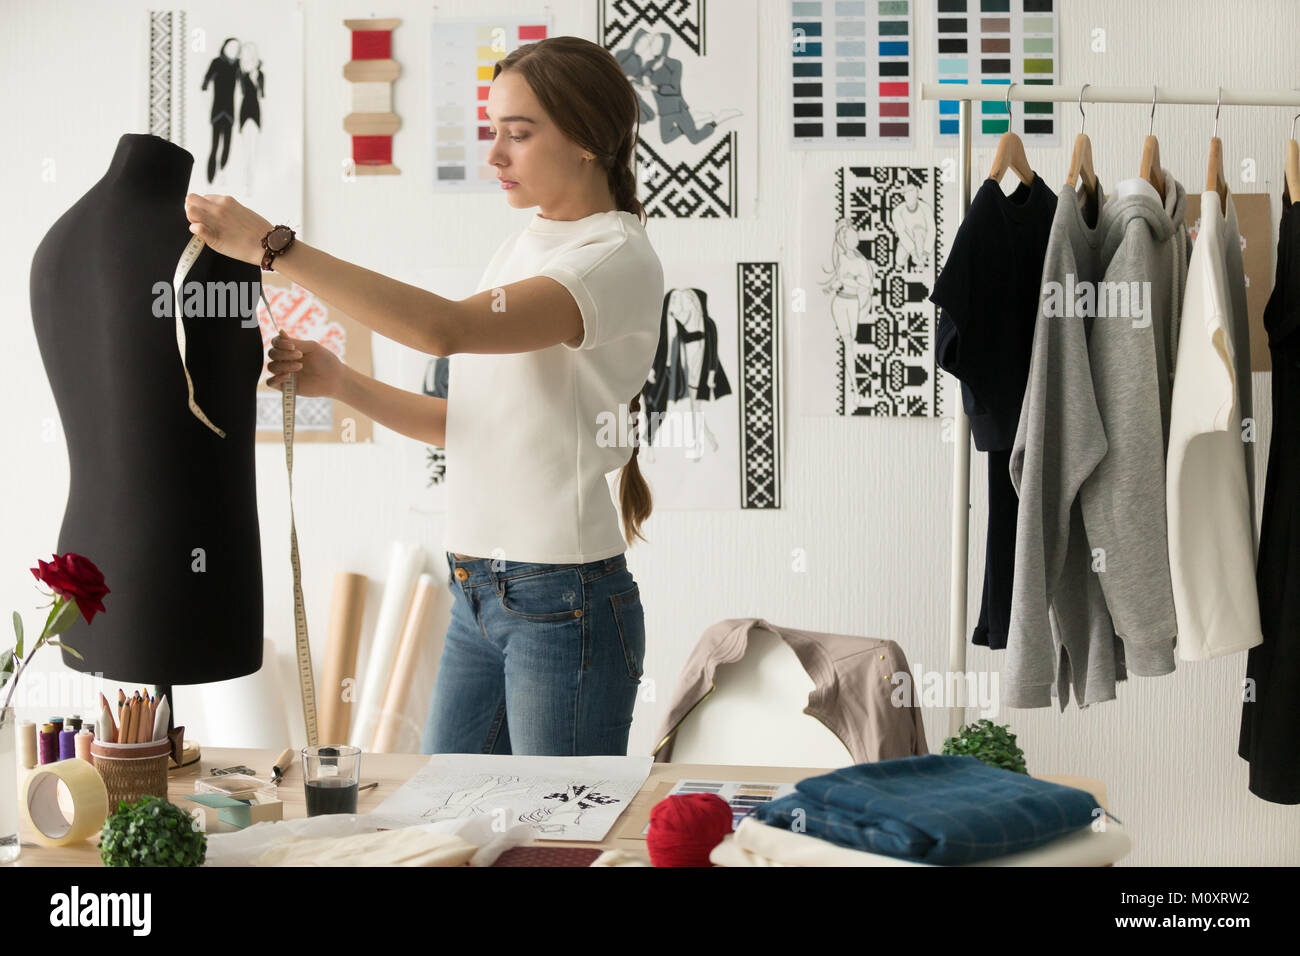 Woman fashion designer measuring mannequin in cozy creative desi - Stock Image